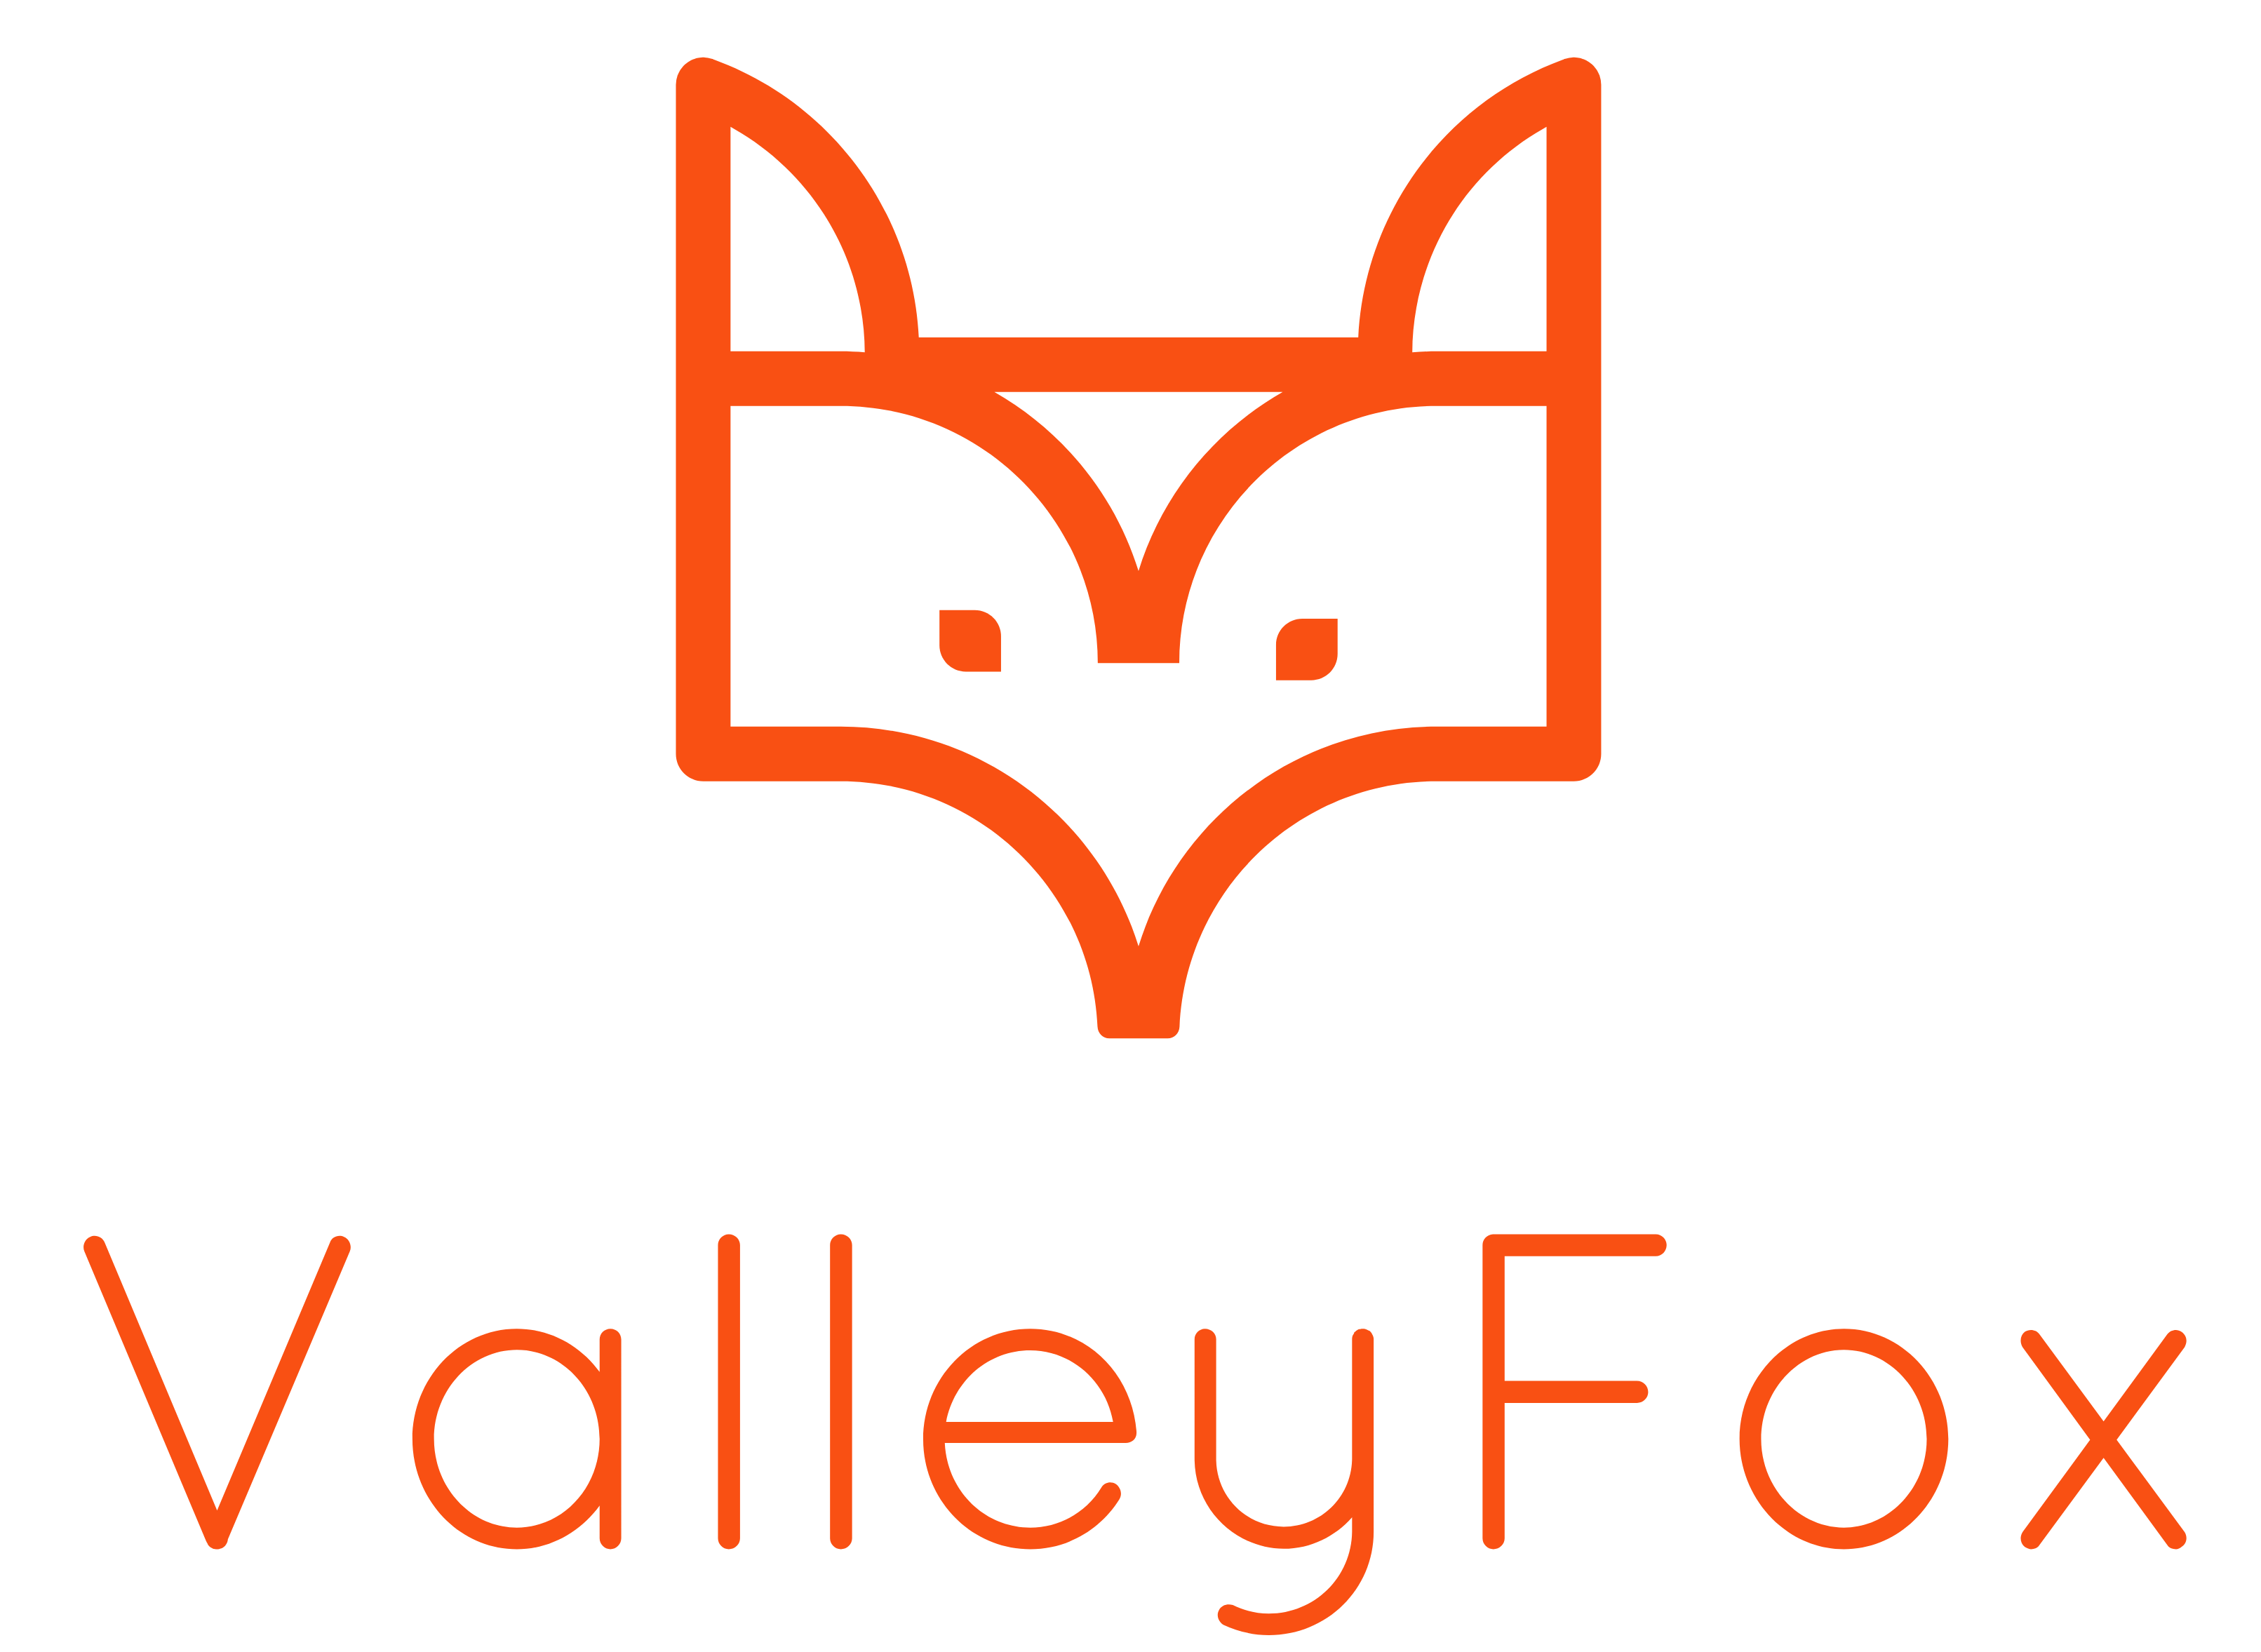 ValleyFox